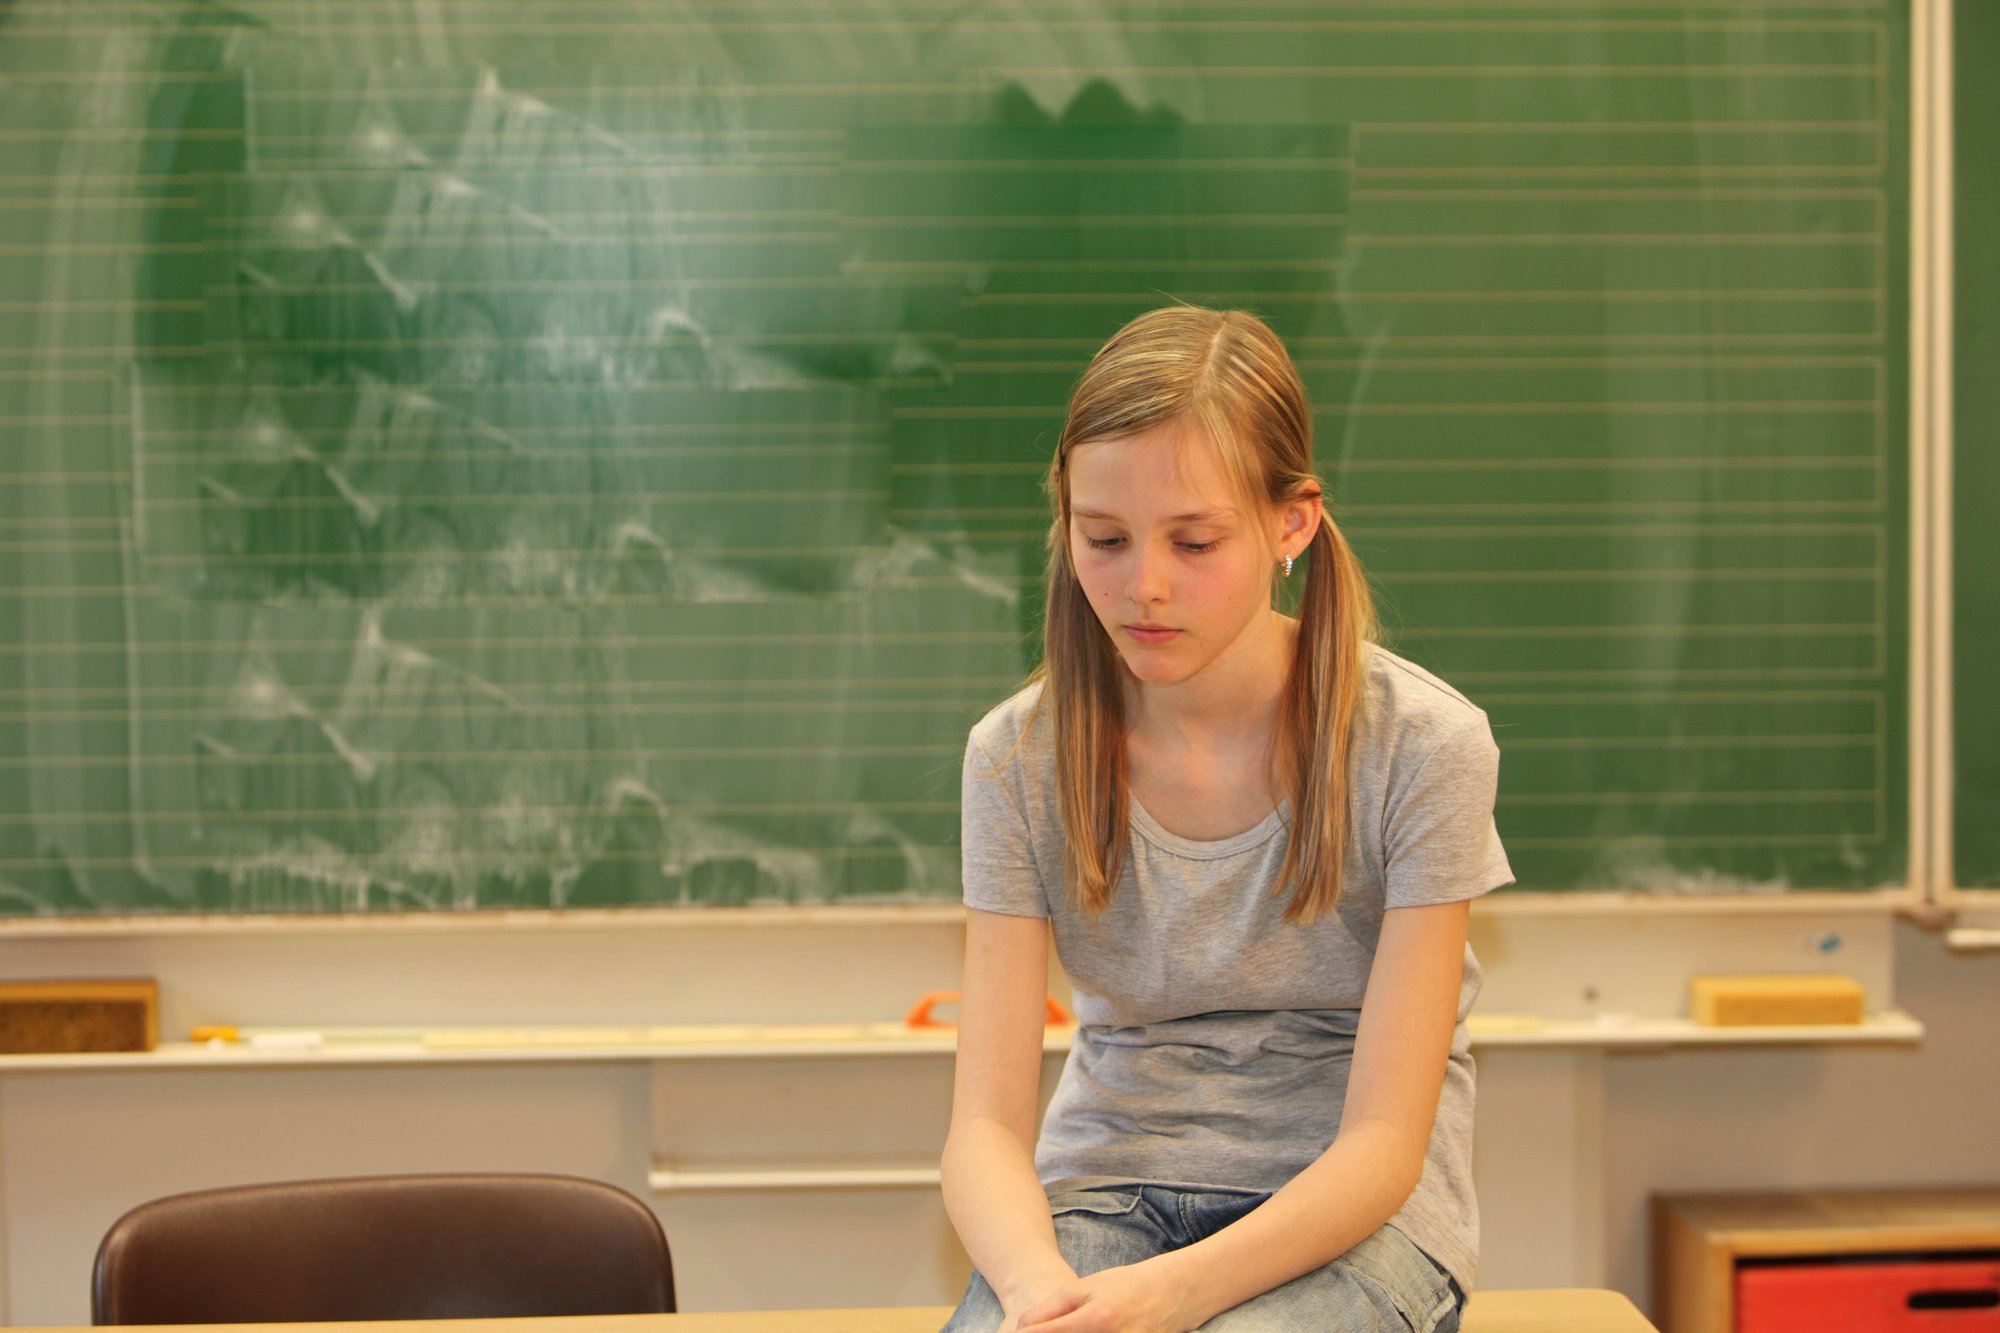 Sad blonde girl in school in front of a blackboard with his head down